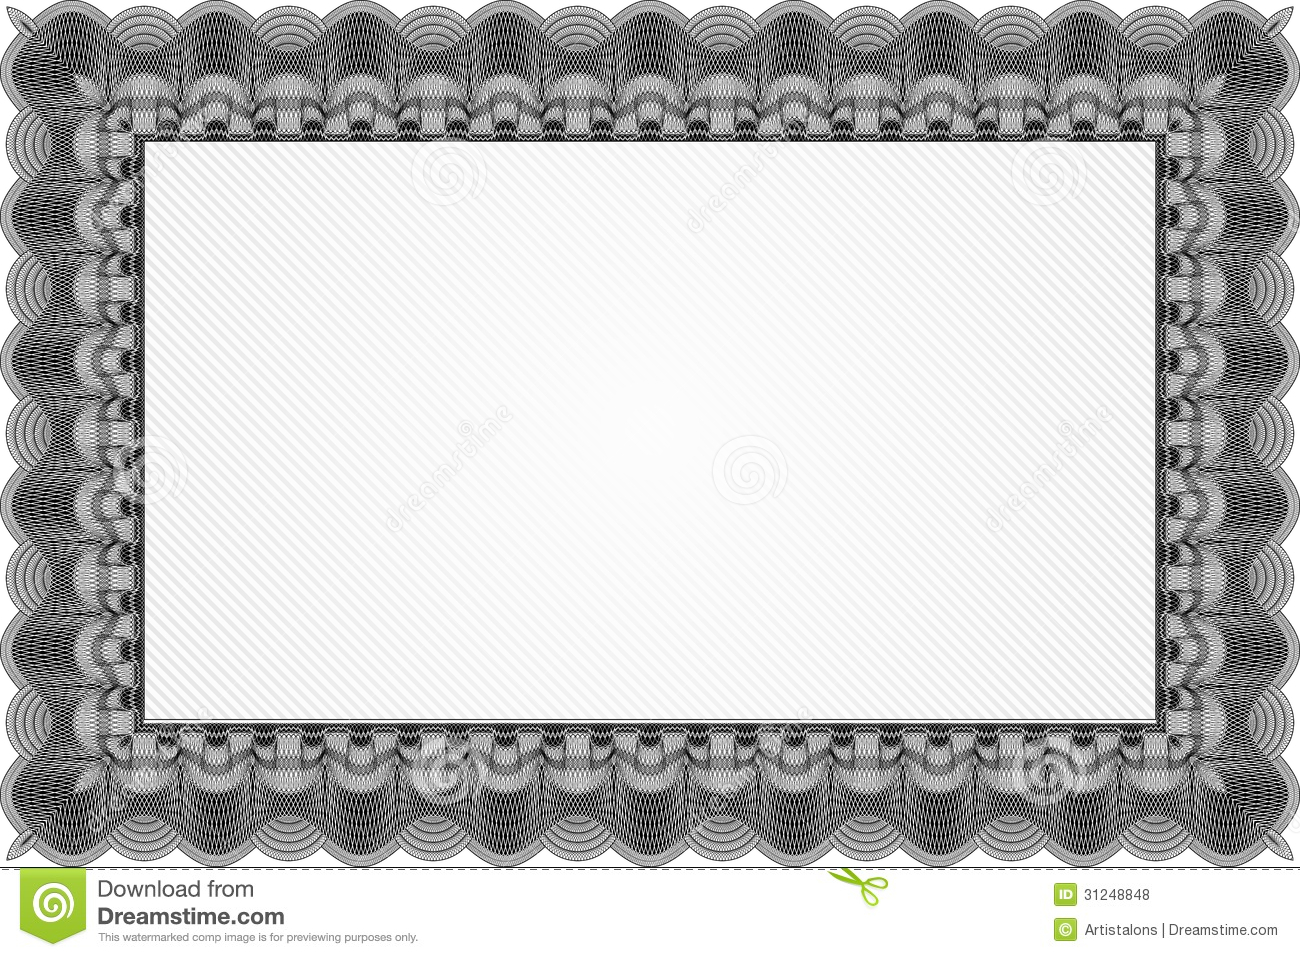 Black Certificate Template Royalty Free Photos Image 31248848 – Blank Stock Certificate Template